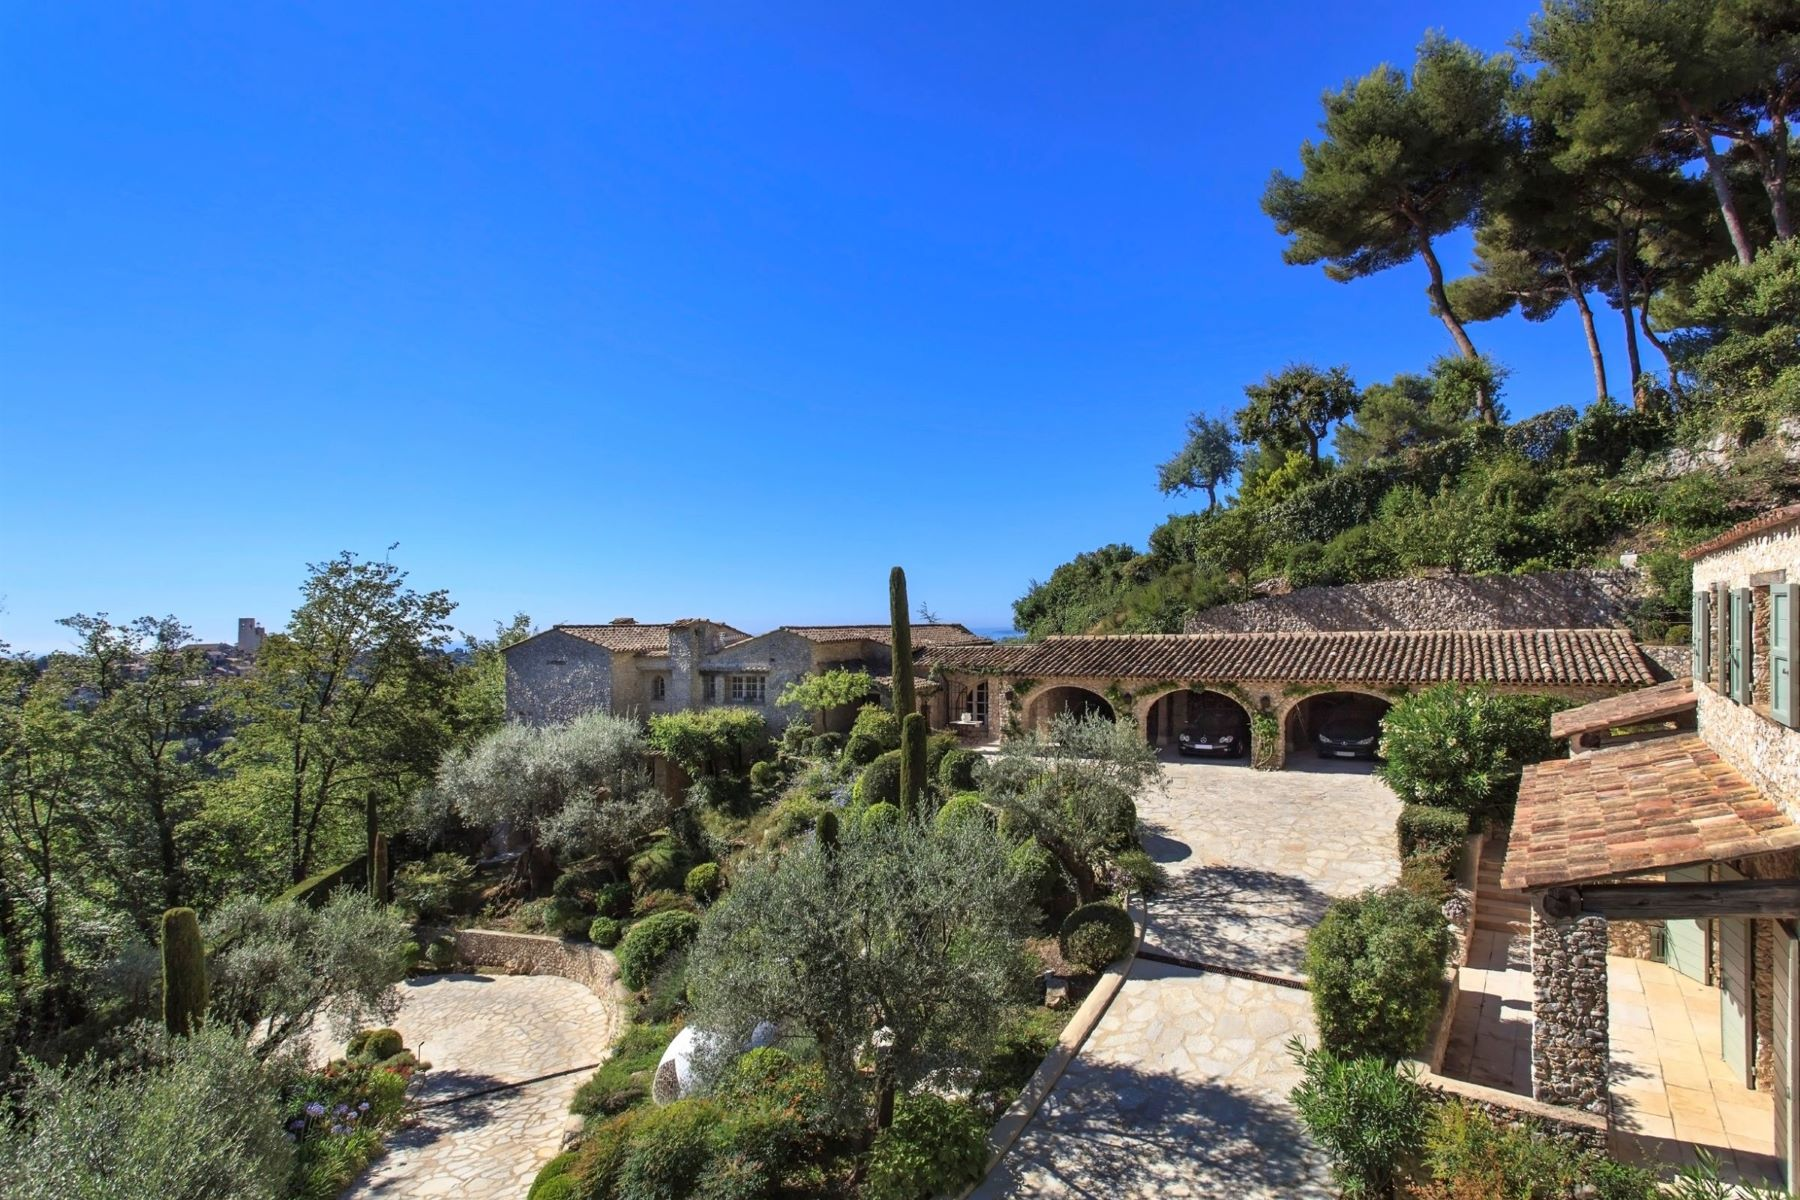 Single Family Homes por un Venta en For sale in Saint-Paul-de-Vence, a prestigious stone property of 433 sq.m Other Provence-Alpes-Cote D'Azur, Provincia - Alpes - Costa Azul 06570 Francia